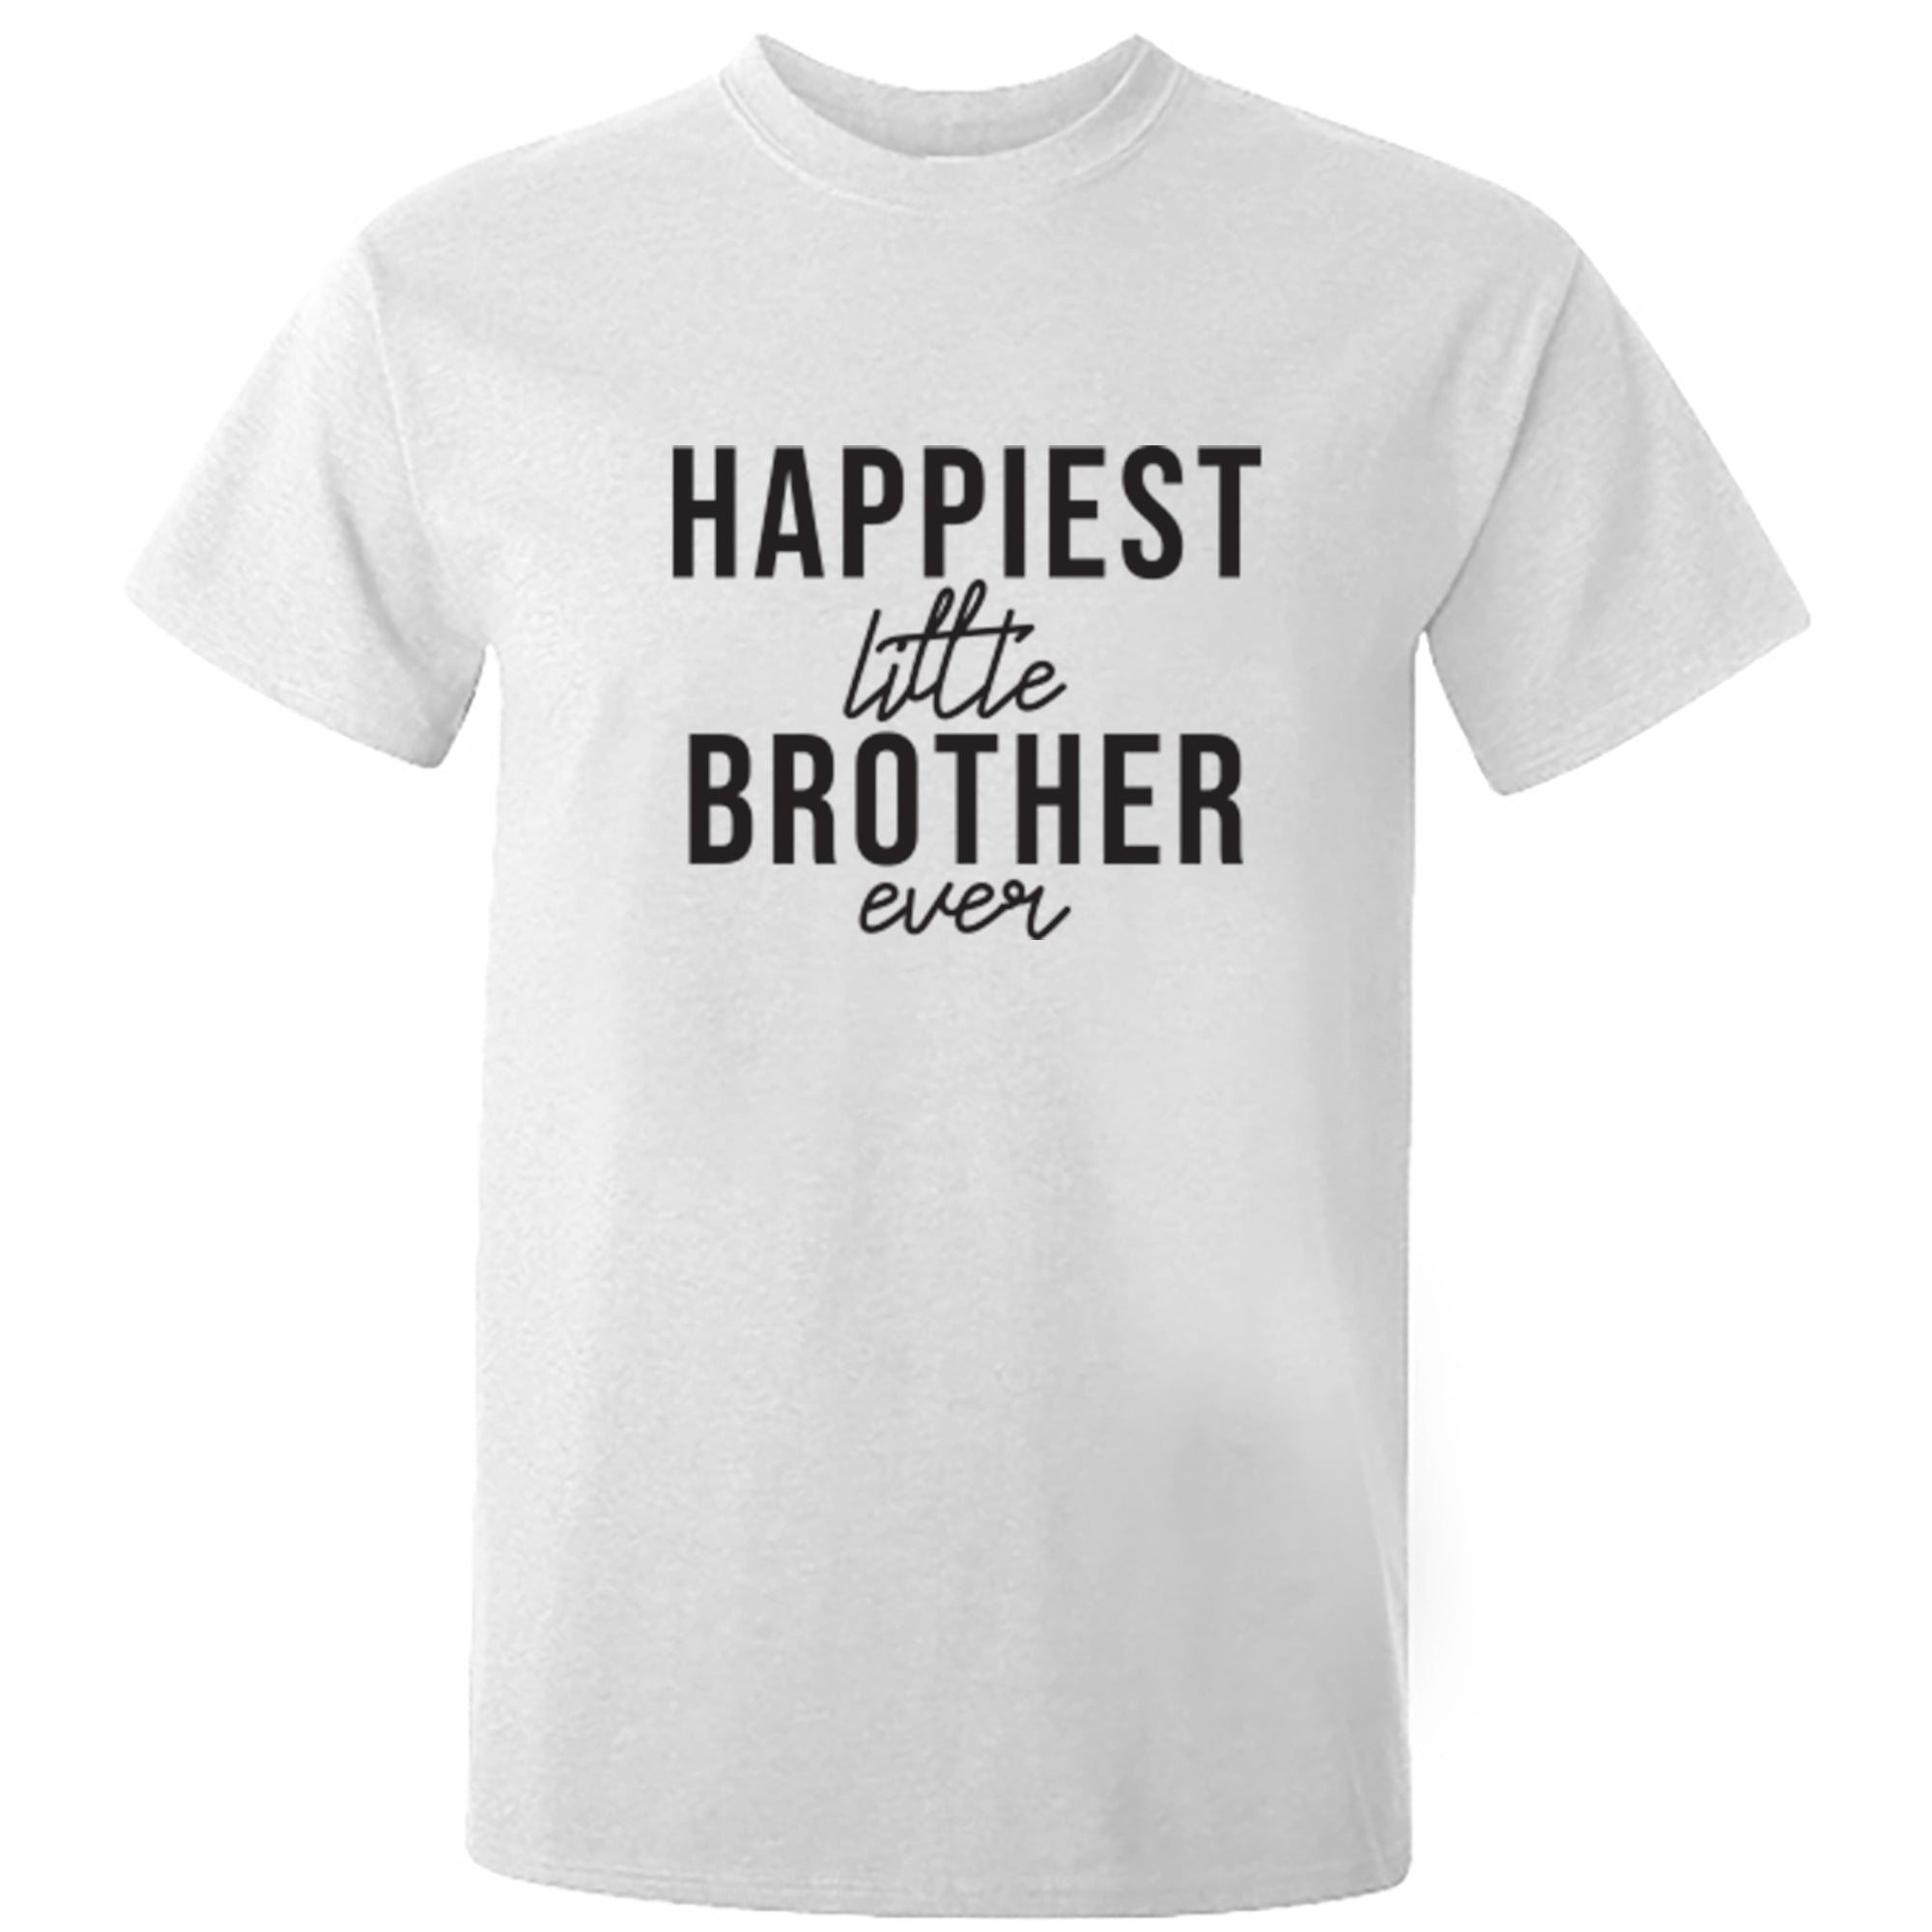 Happiest Little Brother Ever Unisex Fit T-Shirt S0521 - Illustrated Identity Ltd.